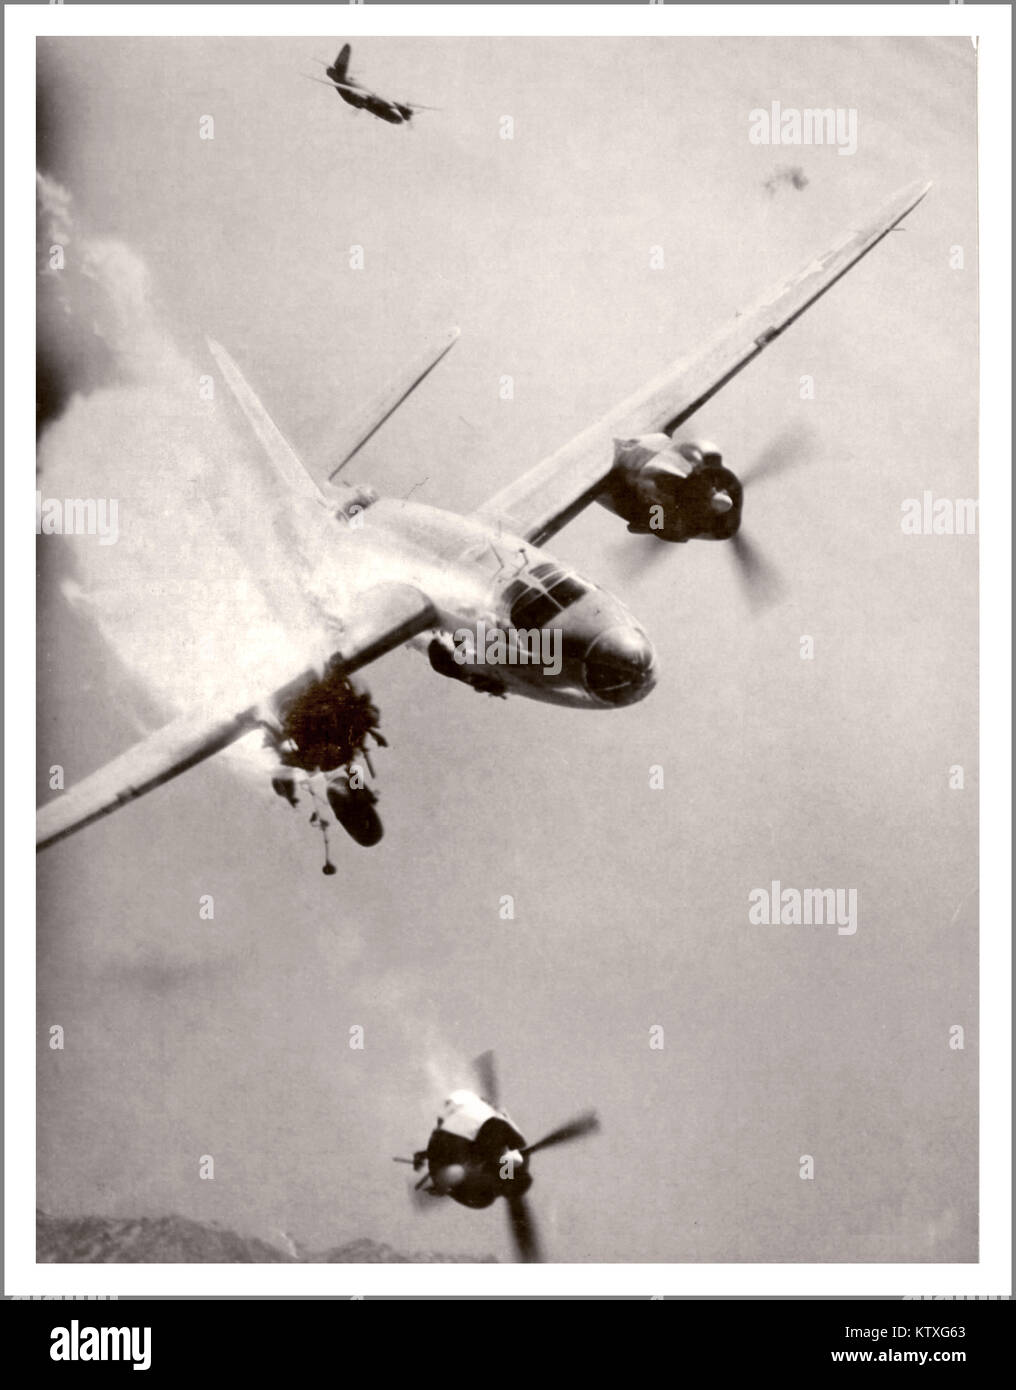 american airforce usaaf b26 bomber over france grim reality war Boeing B -50 Superfortress american airforce usaaf b26 bomber over france grim reality war image of a crippled american b 26 marauder aircraft after a direct hit by a nazi german 88